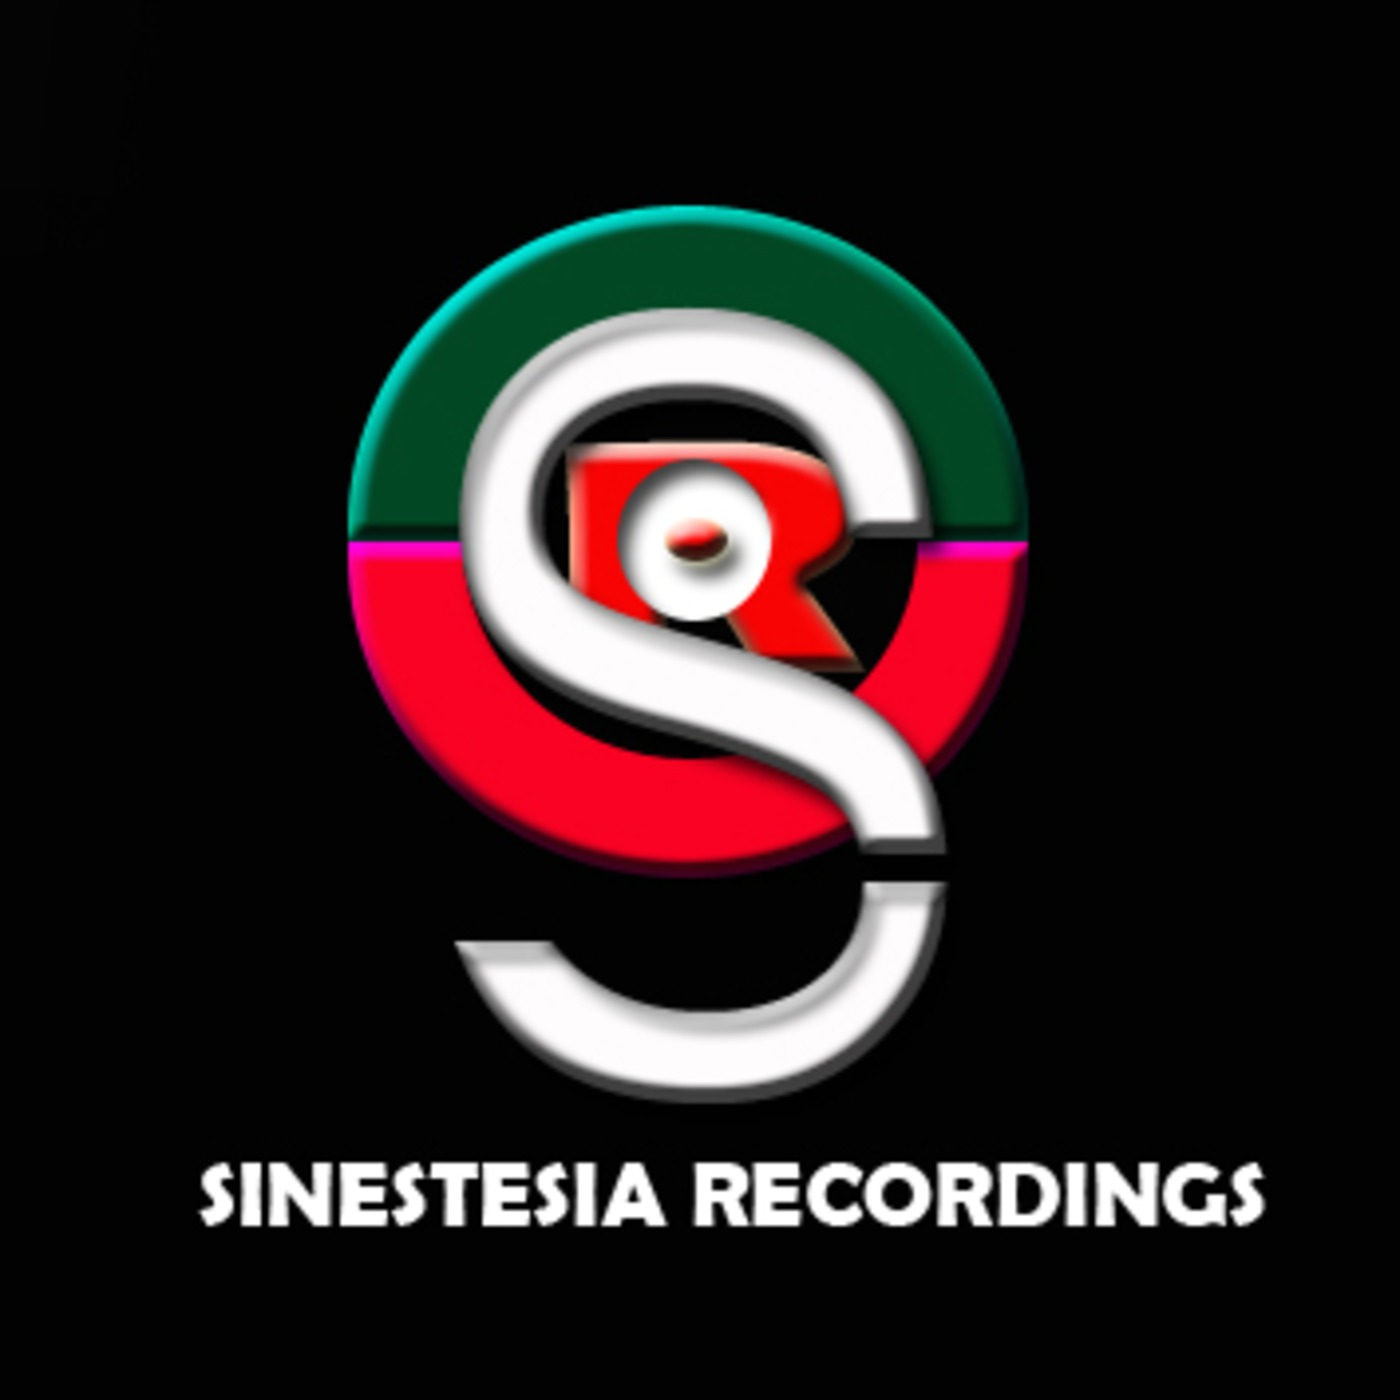 SINESTESIA RECORDINGS' Podcast